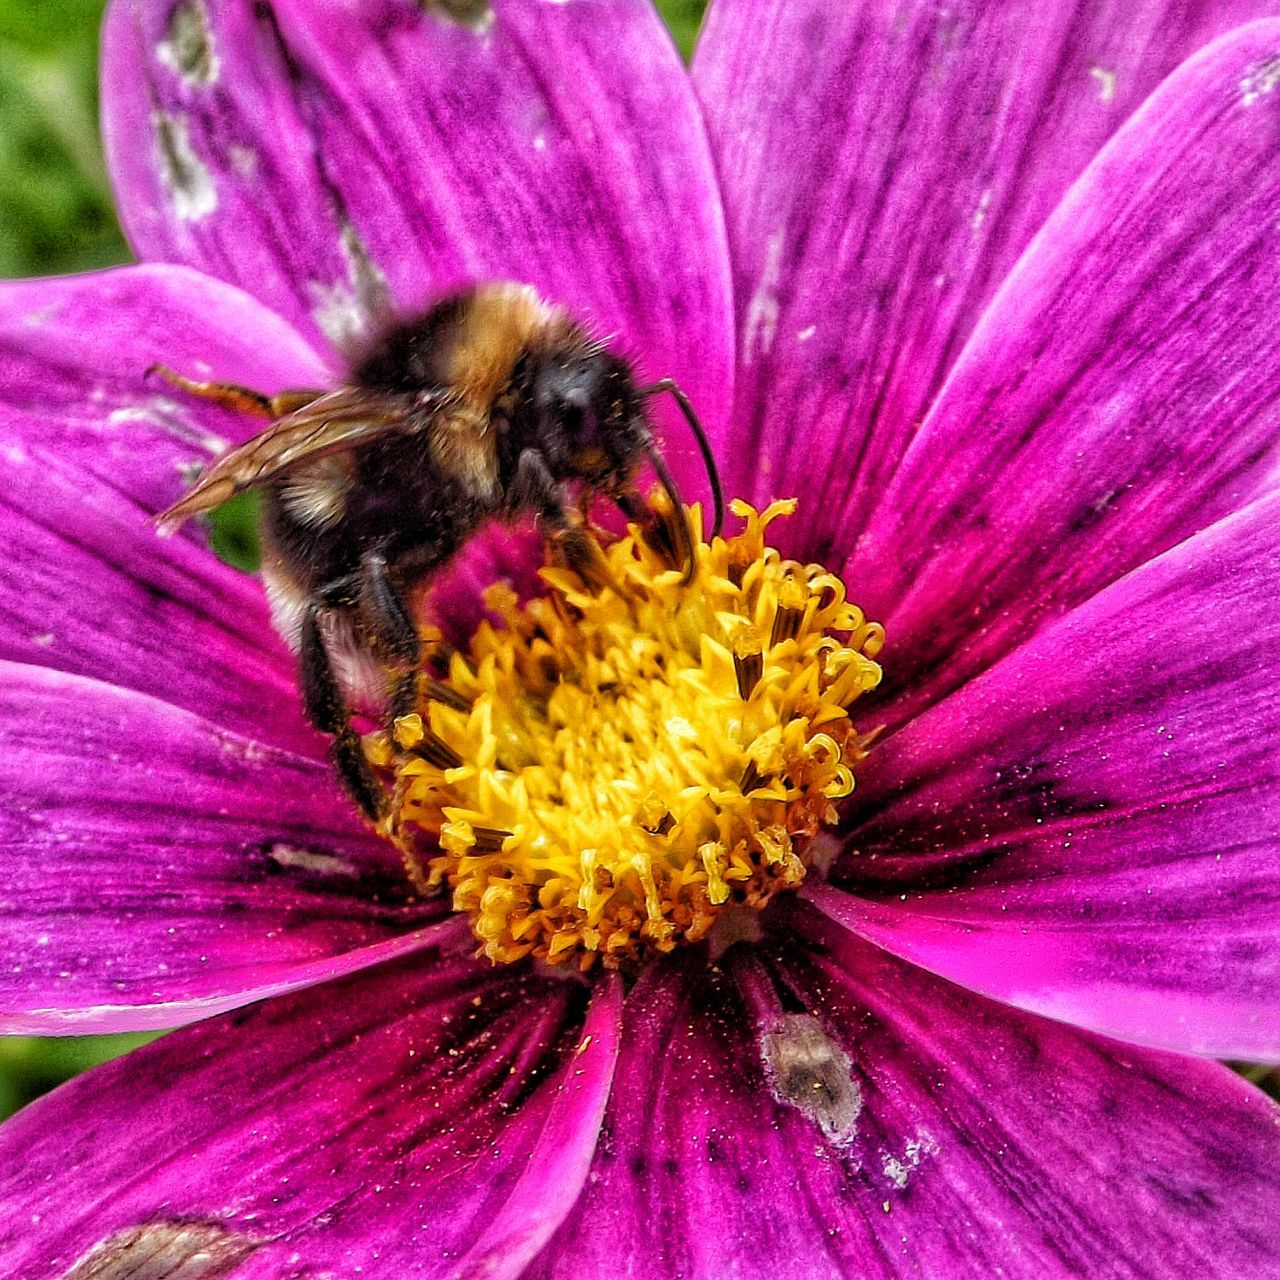 flower, petal, fragility, insect, beauty in nature, freshness, nature, flower head, animals in the wild, pollen, animal themes, growth, no people, outdoors, one animal, purple, plant, pollination, bee, day, pink color, yellow, close-up, bumblebee, blooming